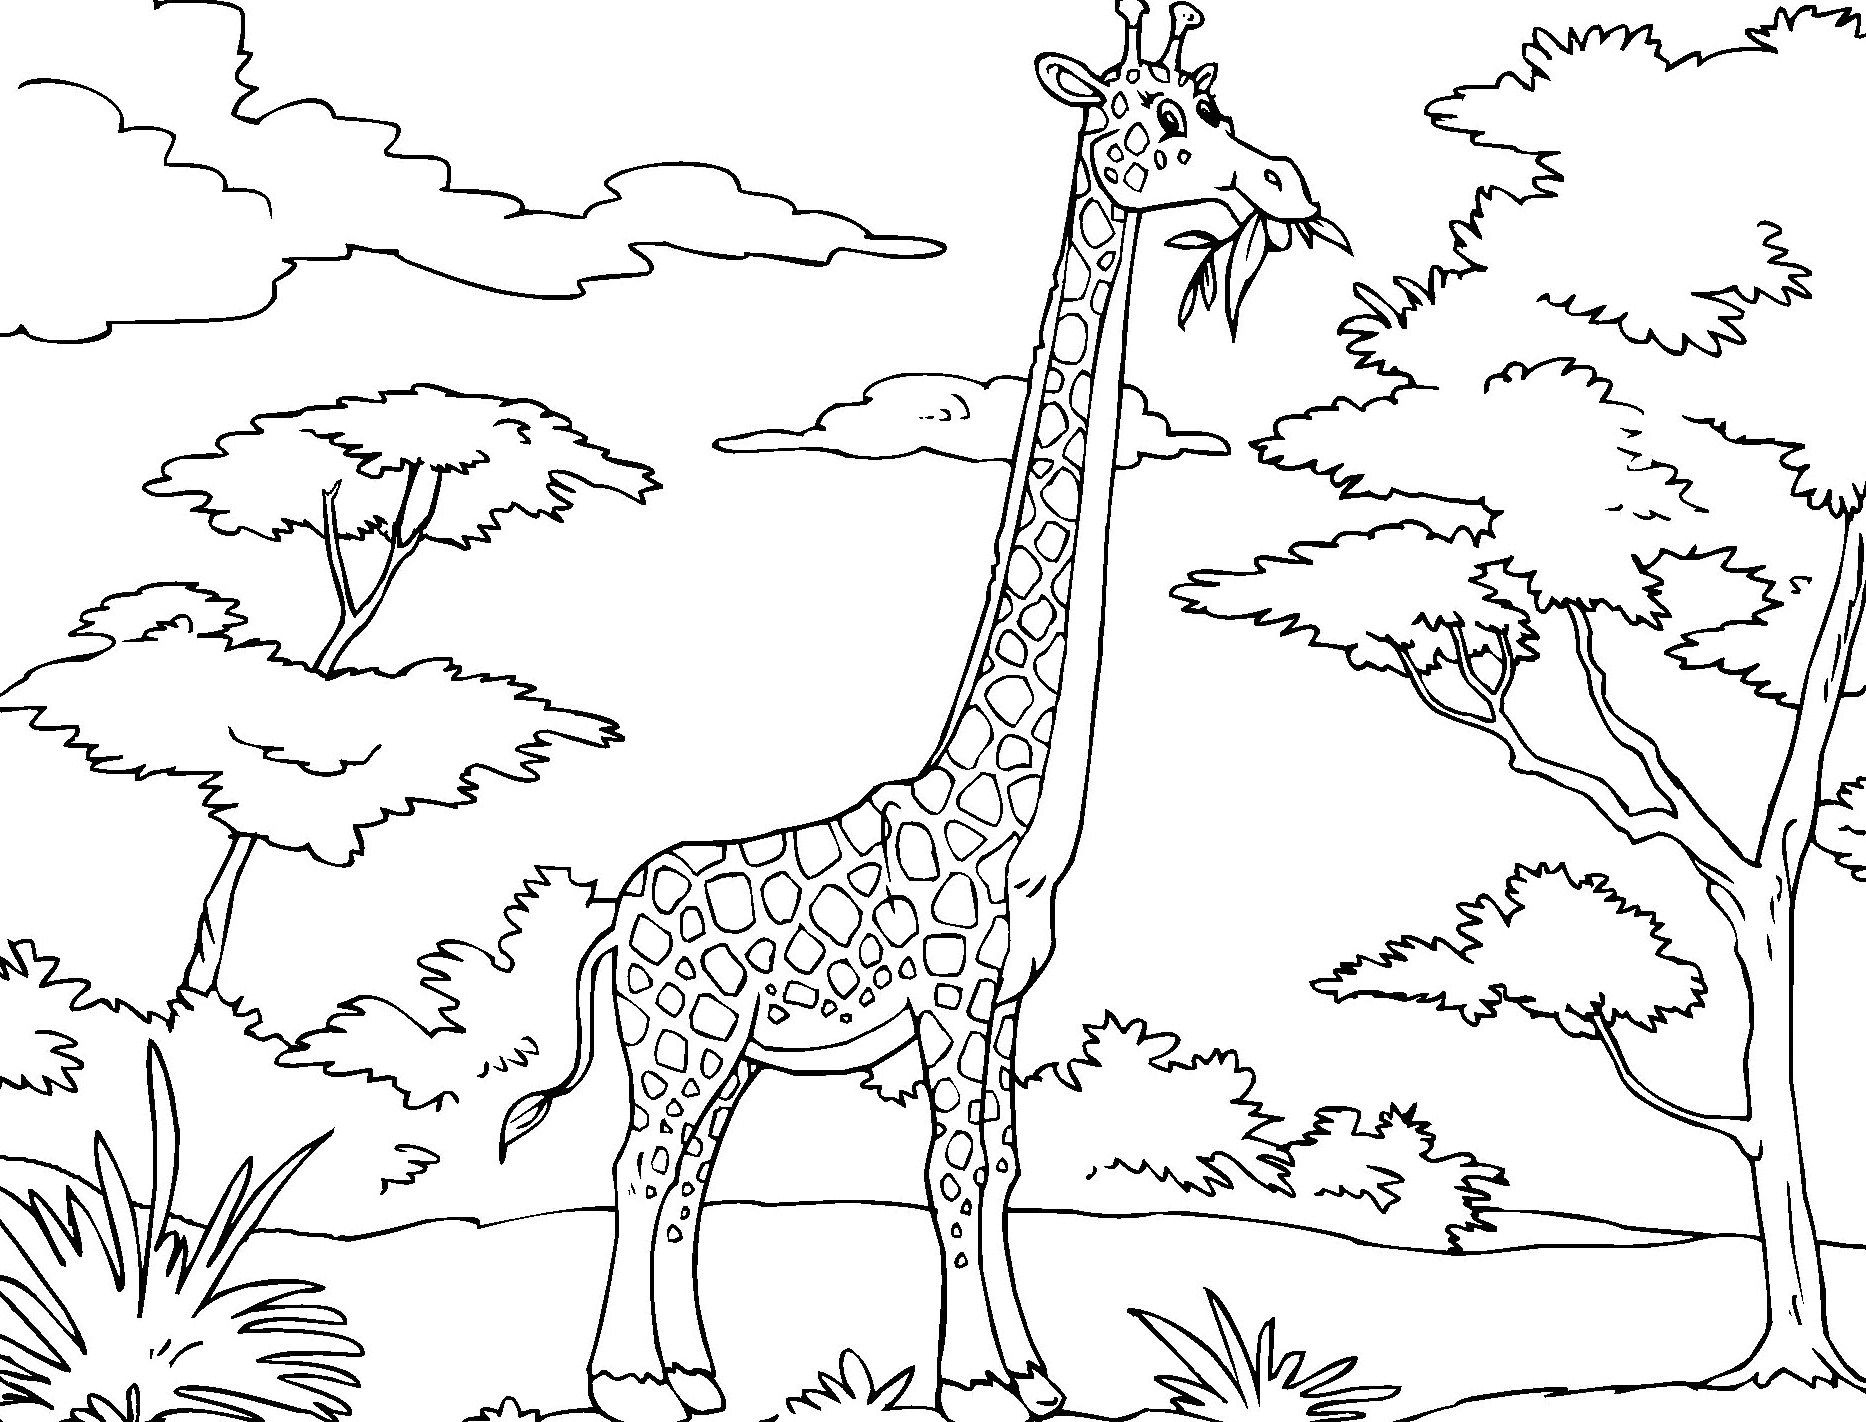 together with  besides Printable Giraffe Coloring Pages besides Giraffe Coloring Pages Printable additionally  in addition baby giraffe coloring page moreover  in addition baby giraffe coloring pages gianfreda 110 moreover  together with giraffe coloring pages 3 moreover . on baby giraffe coloring pages free printable